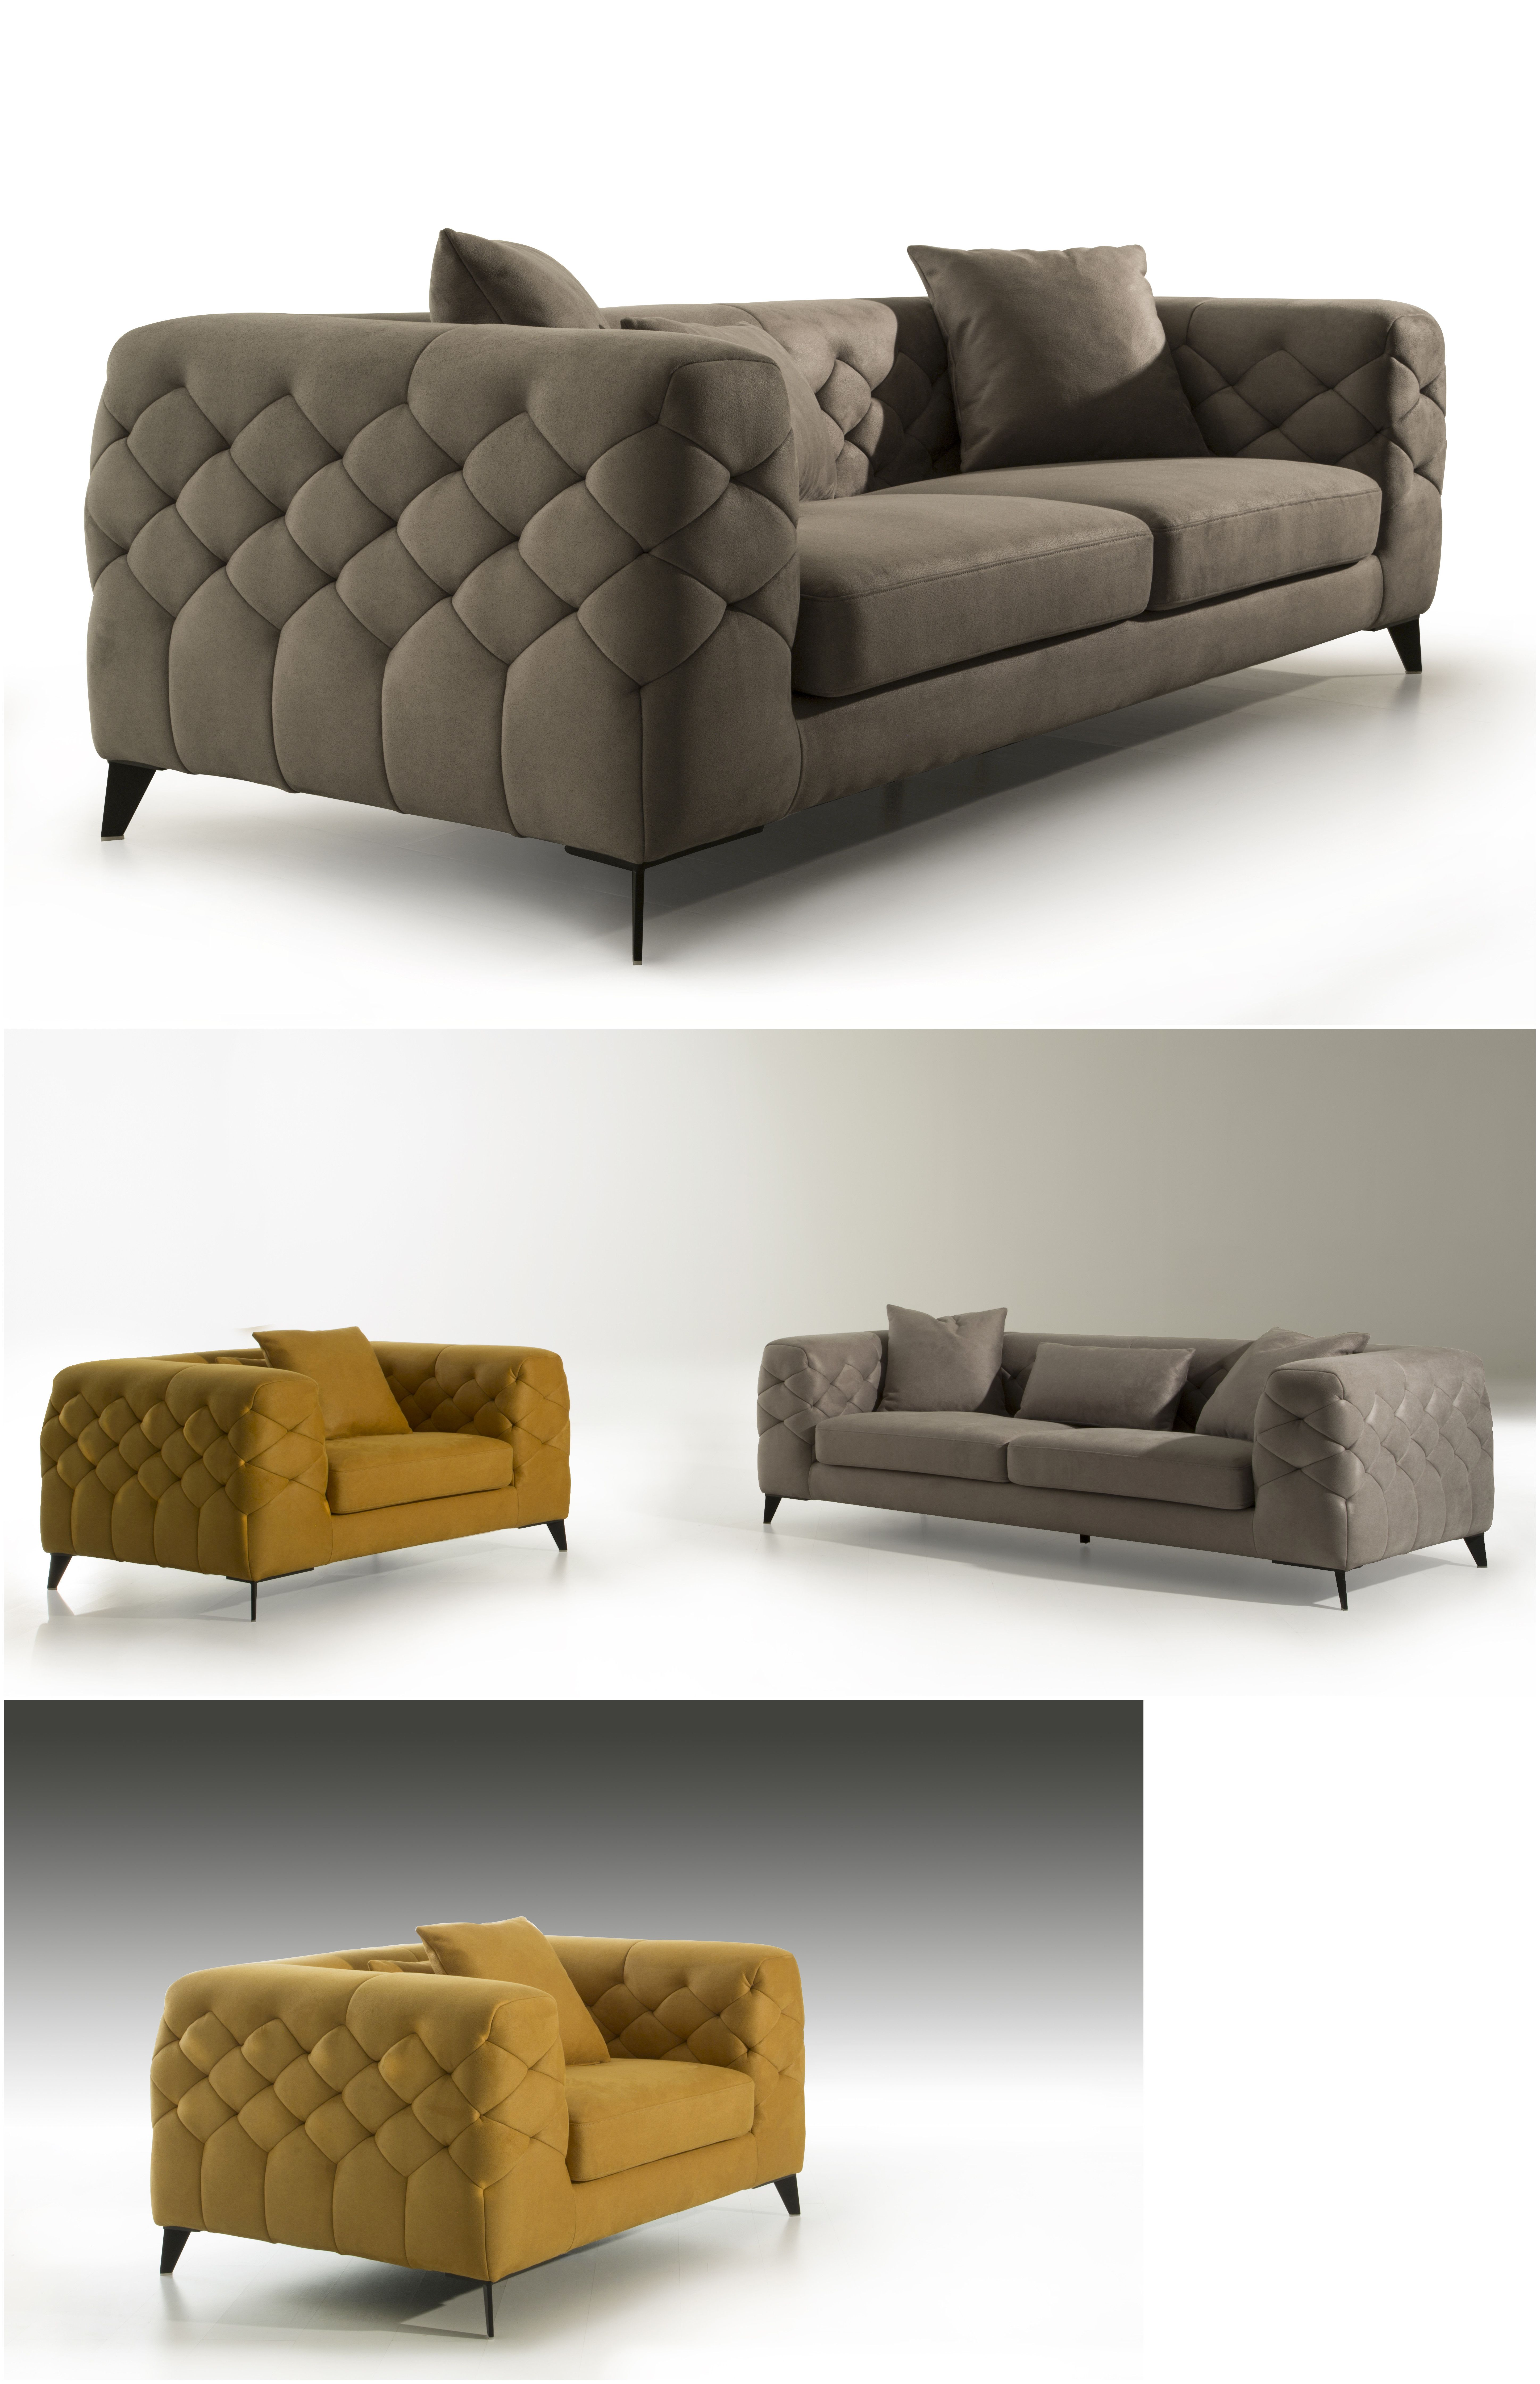 Fashionable Home Furniture Lounge Wooden Tufted Modern Sofa Designs ...